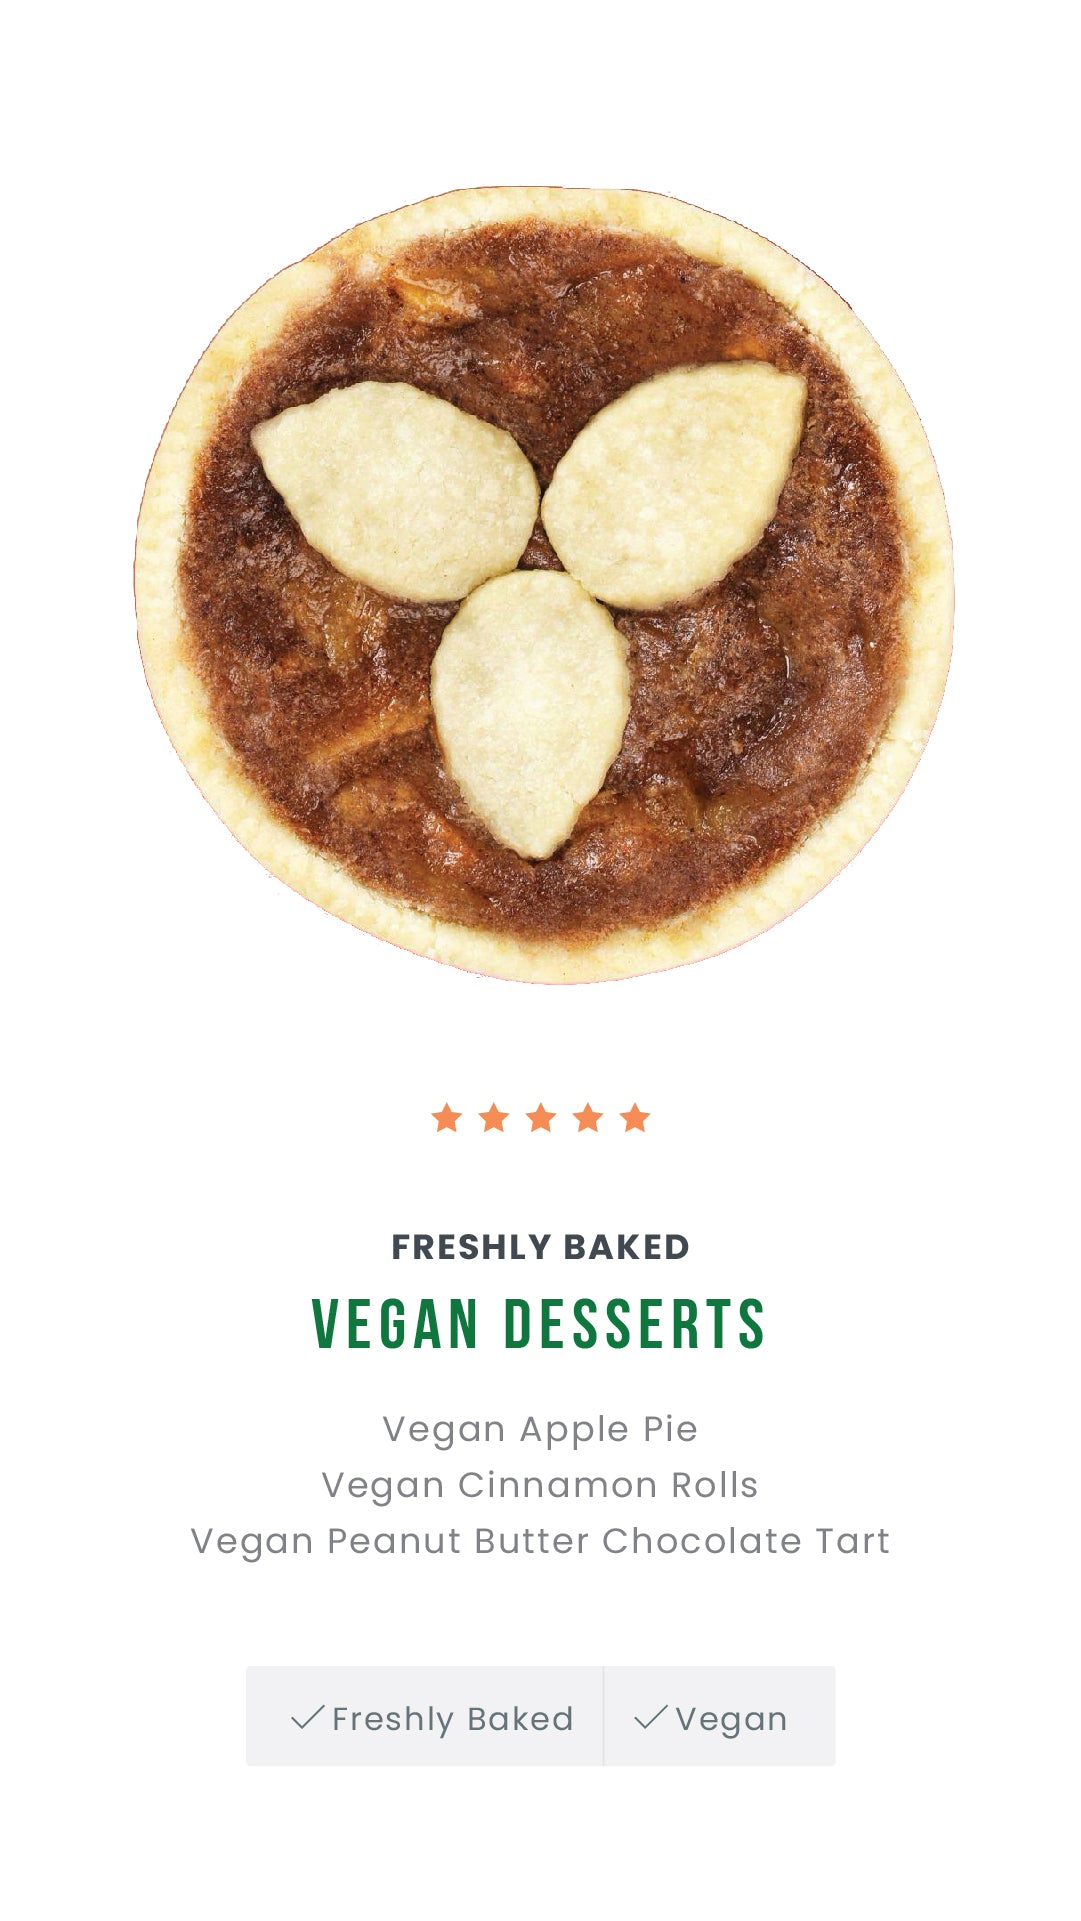 A buttery, flaky crust enclosed with the soft and wonderful taste of luscious baked Apples and Cinnamon. Made with the finest ingredients for an elegant and heart-warming taste. Enjoy this quintessential Vegan Apple Pie with Tea, Coffee or as a perfect finish to any meal.